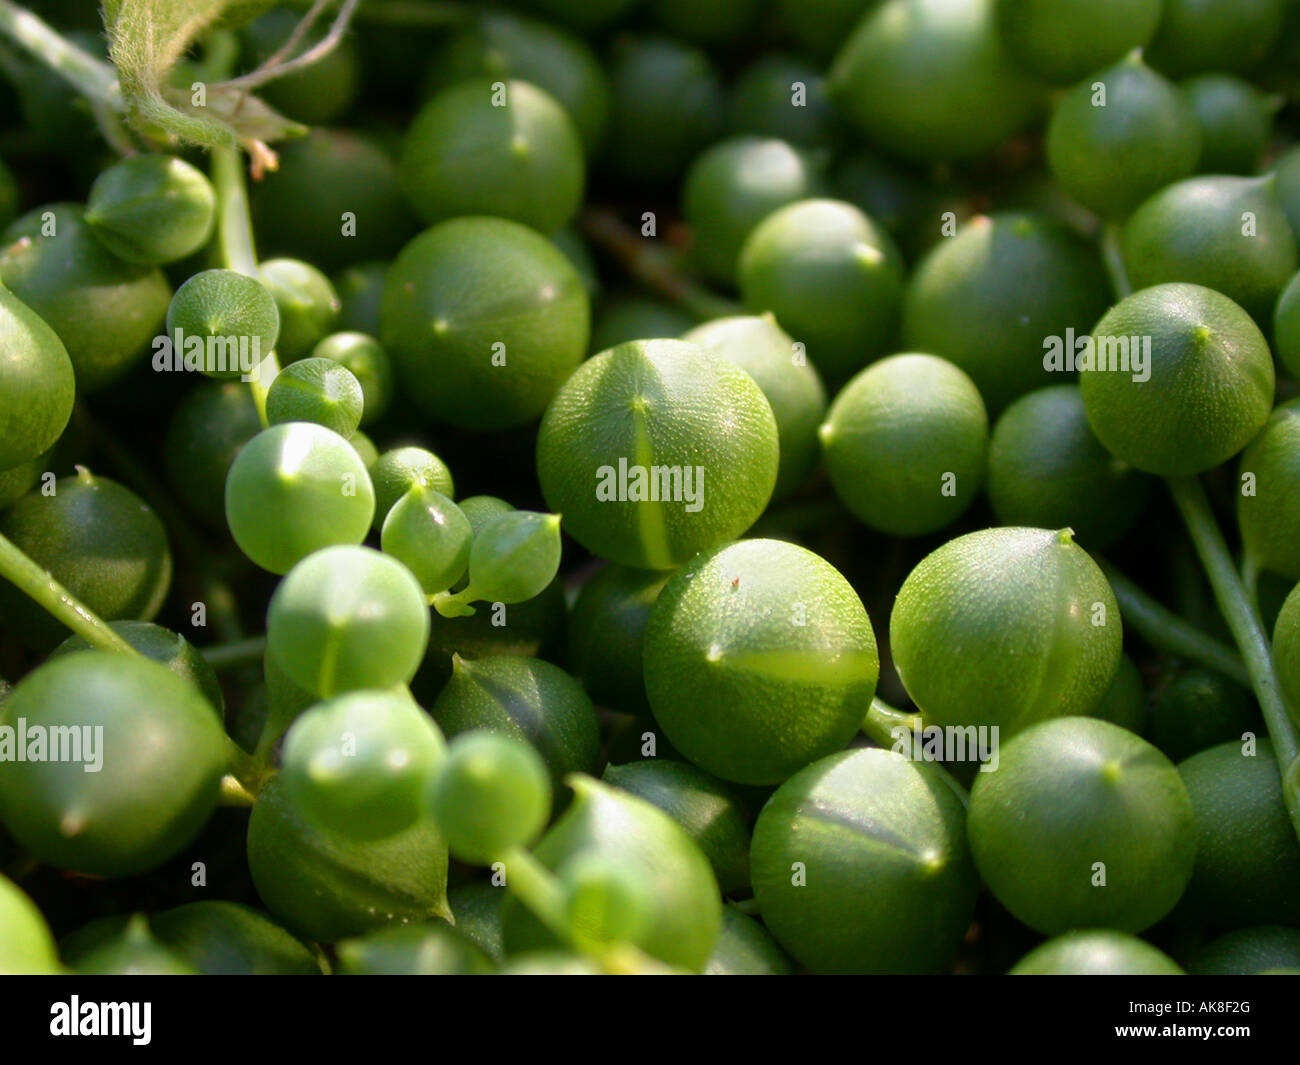 Gooseberry, String of Beads, String-of-Pearls. String-of-Marbles, String-of-Peas (Senecio rowleyanus), succulent Stock Photo